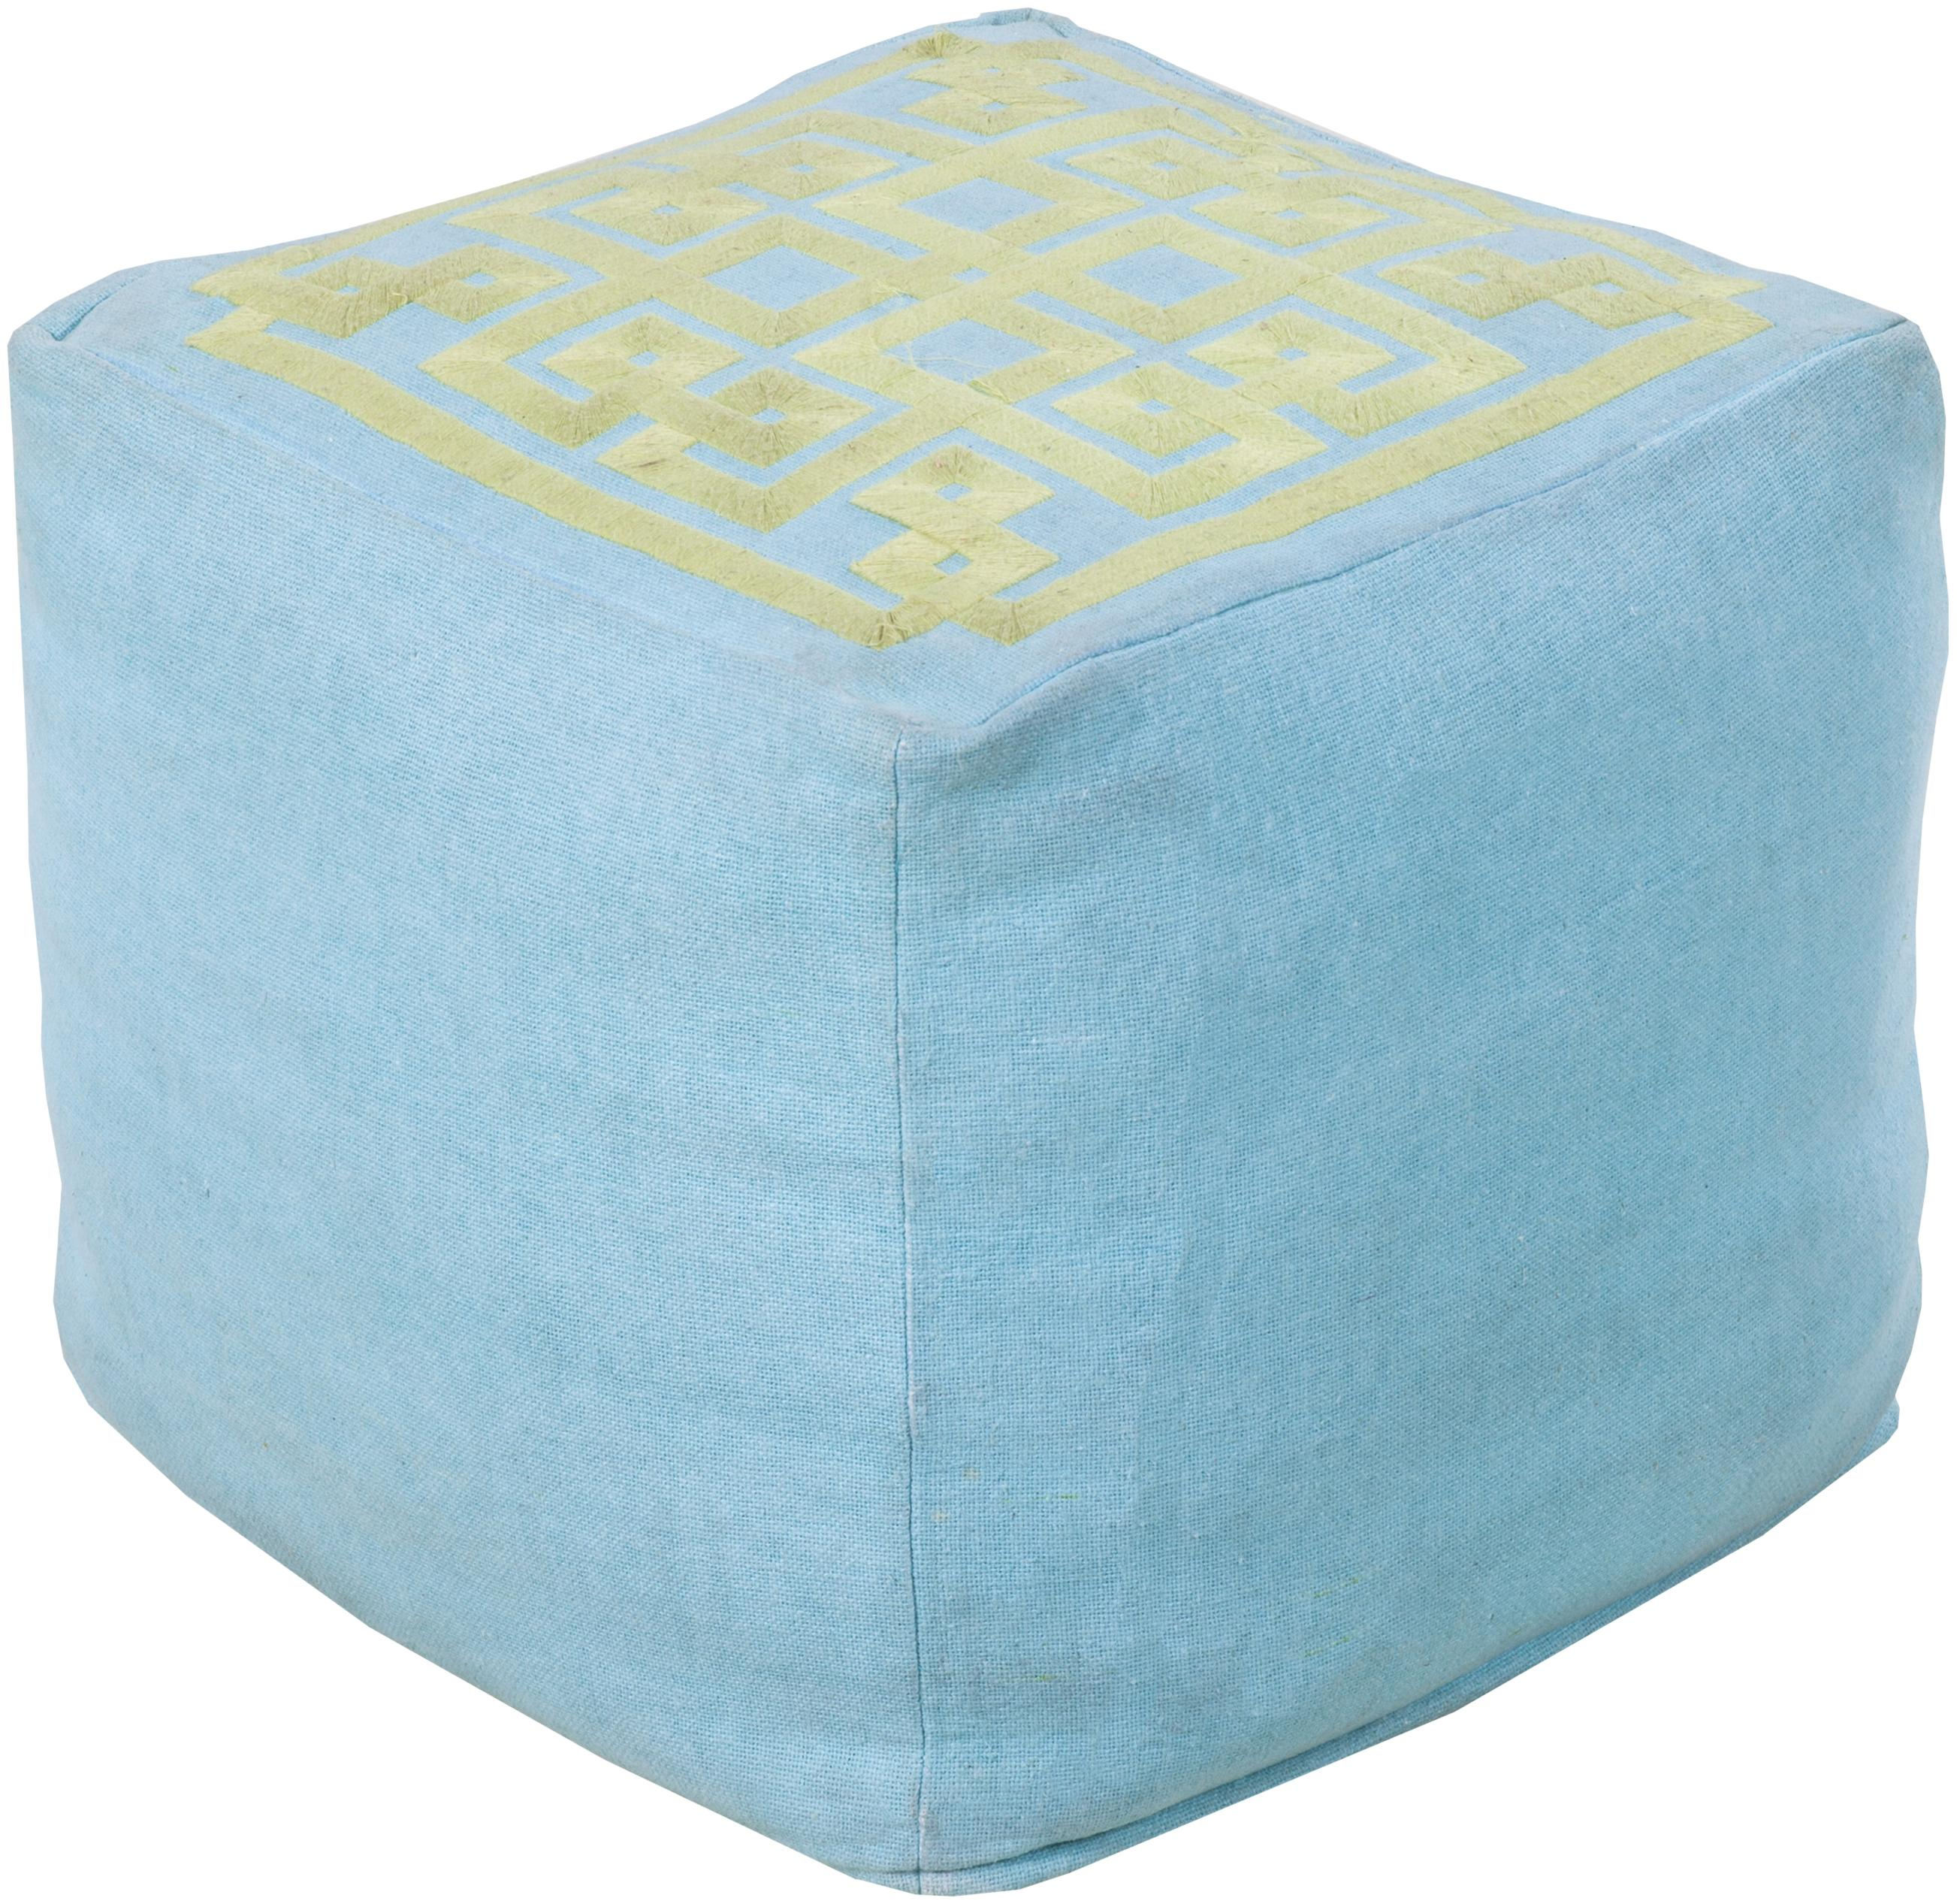 "Poufs 18"" x 18"" x 18"" Pouf by 9596 at Becker Furniture"